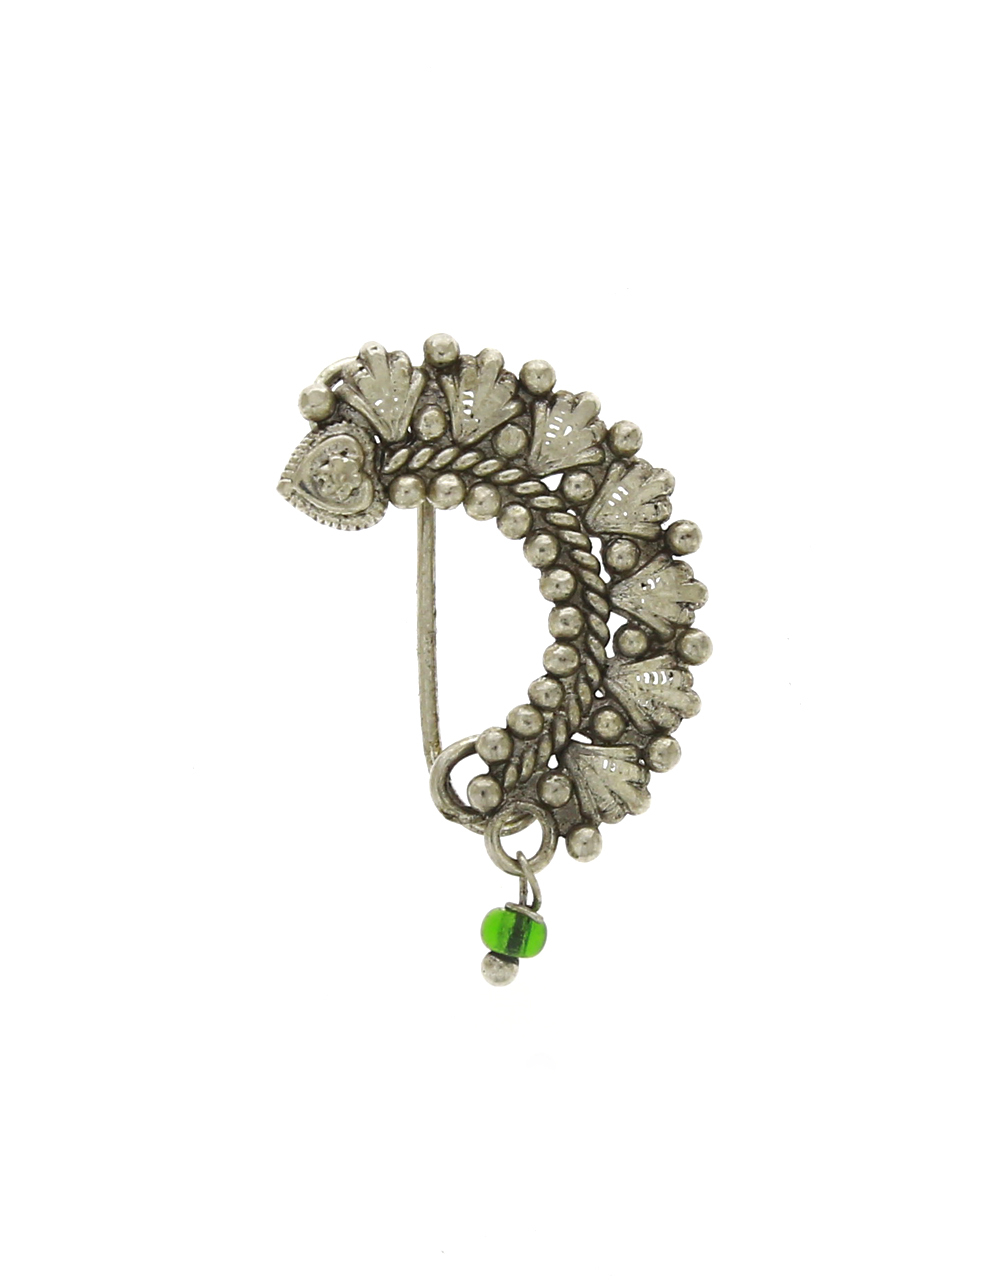 Oxidized Finish Adorable Marathi Wedding Nath | Clip-On Nose Pin, Clip-On Nath For Women [Press On Nath]